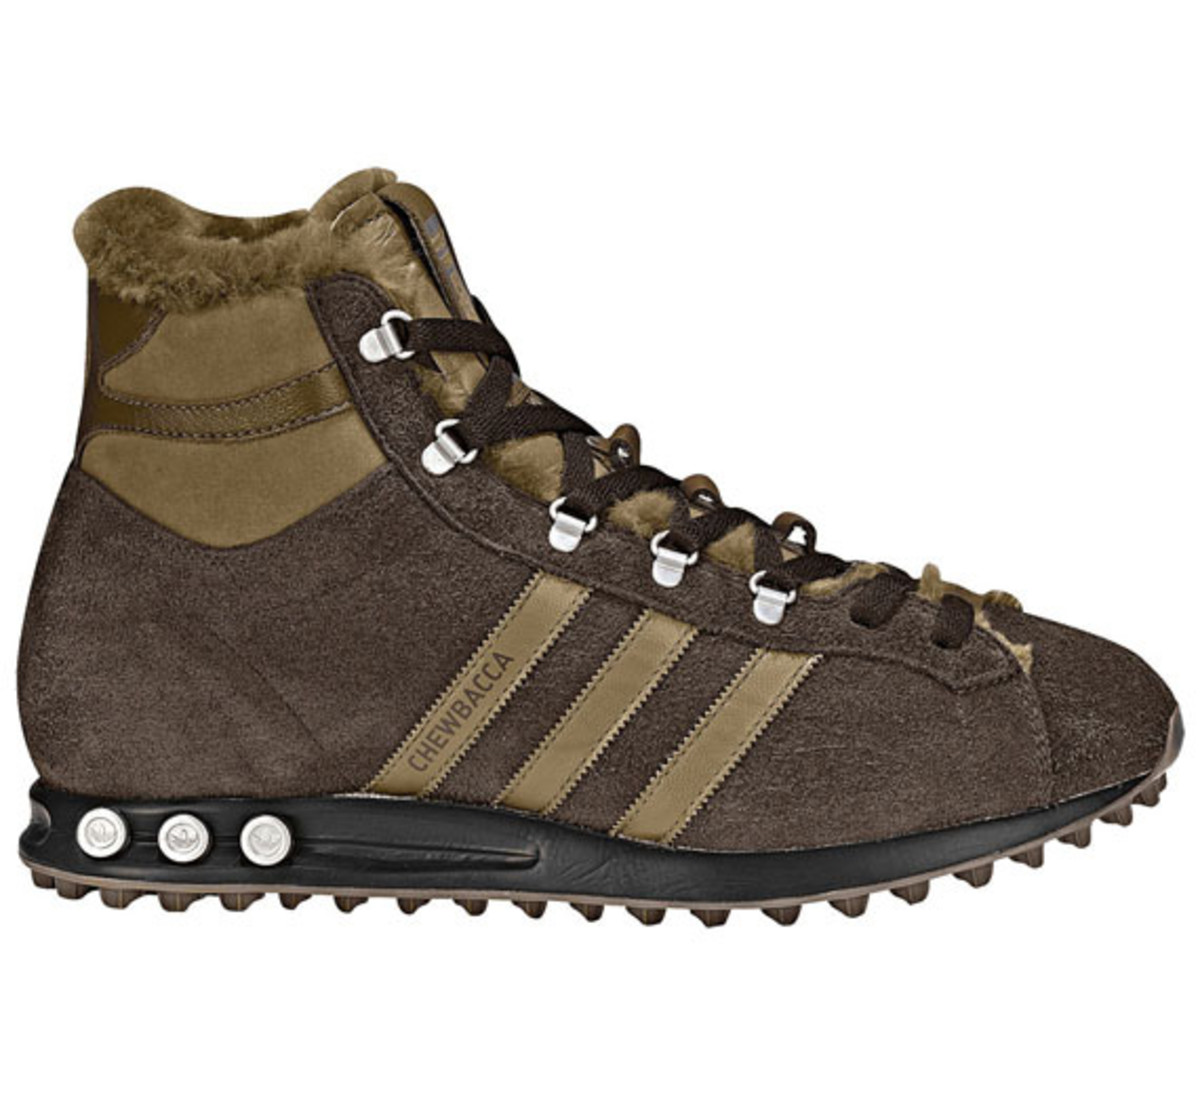 adidas_originals_star_wars_chewbacca__03